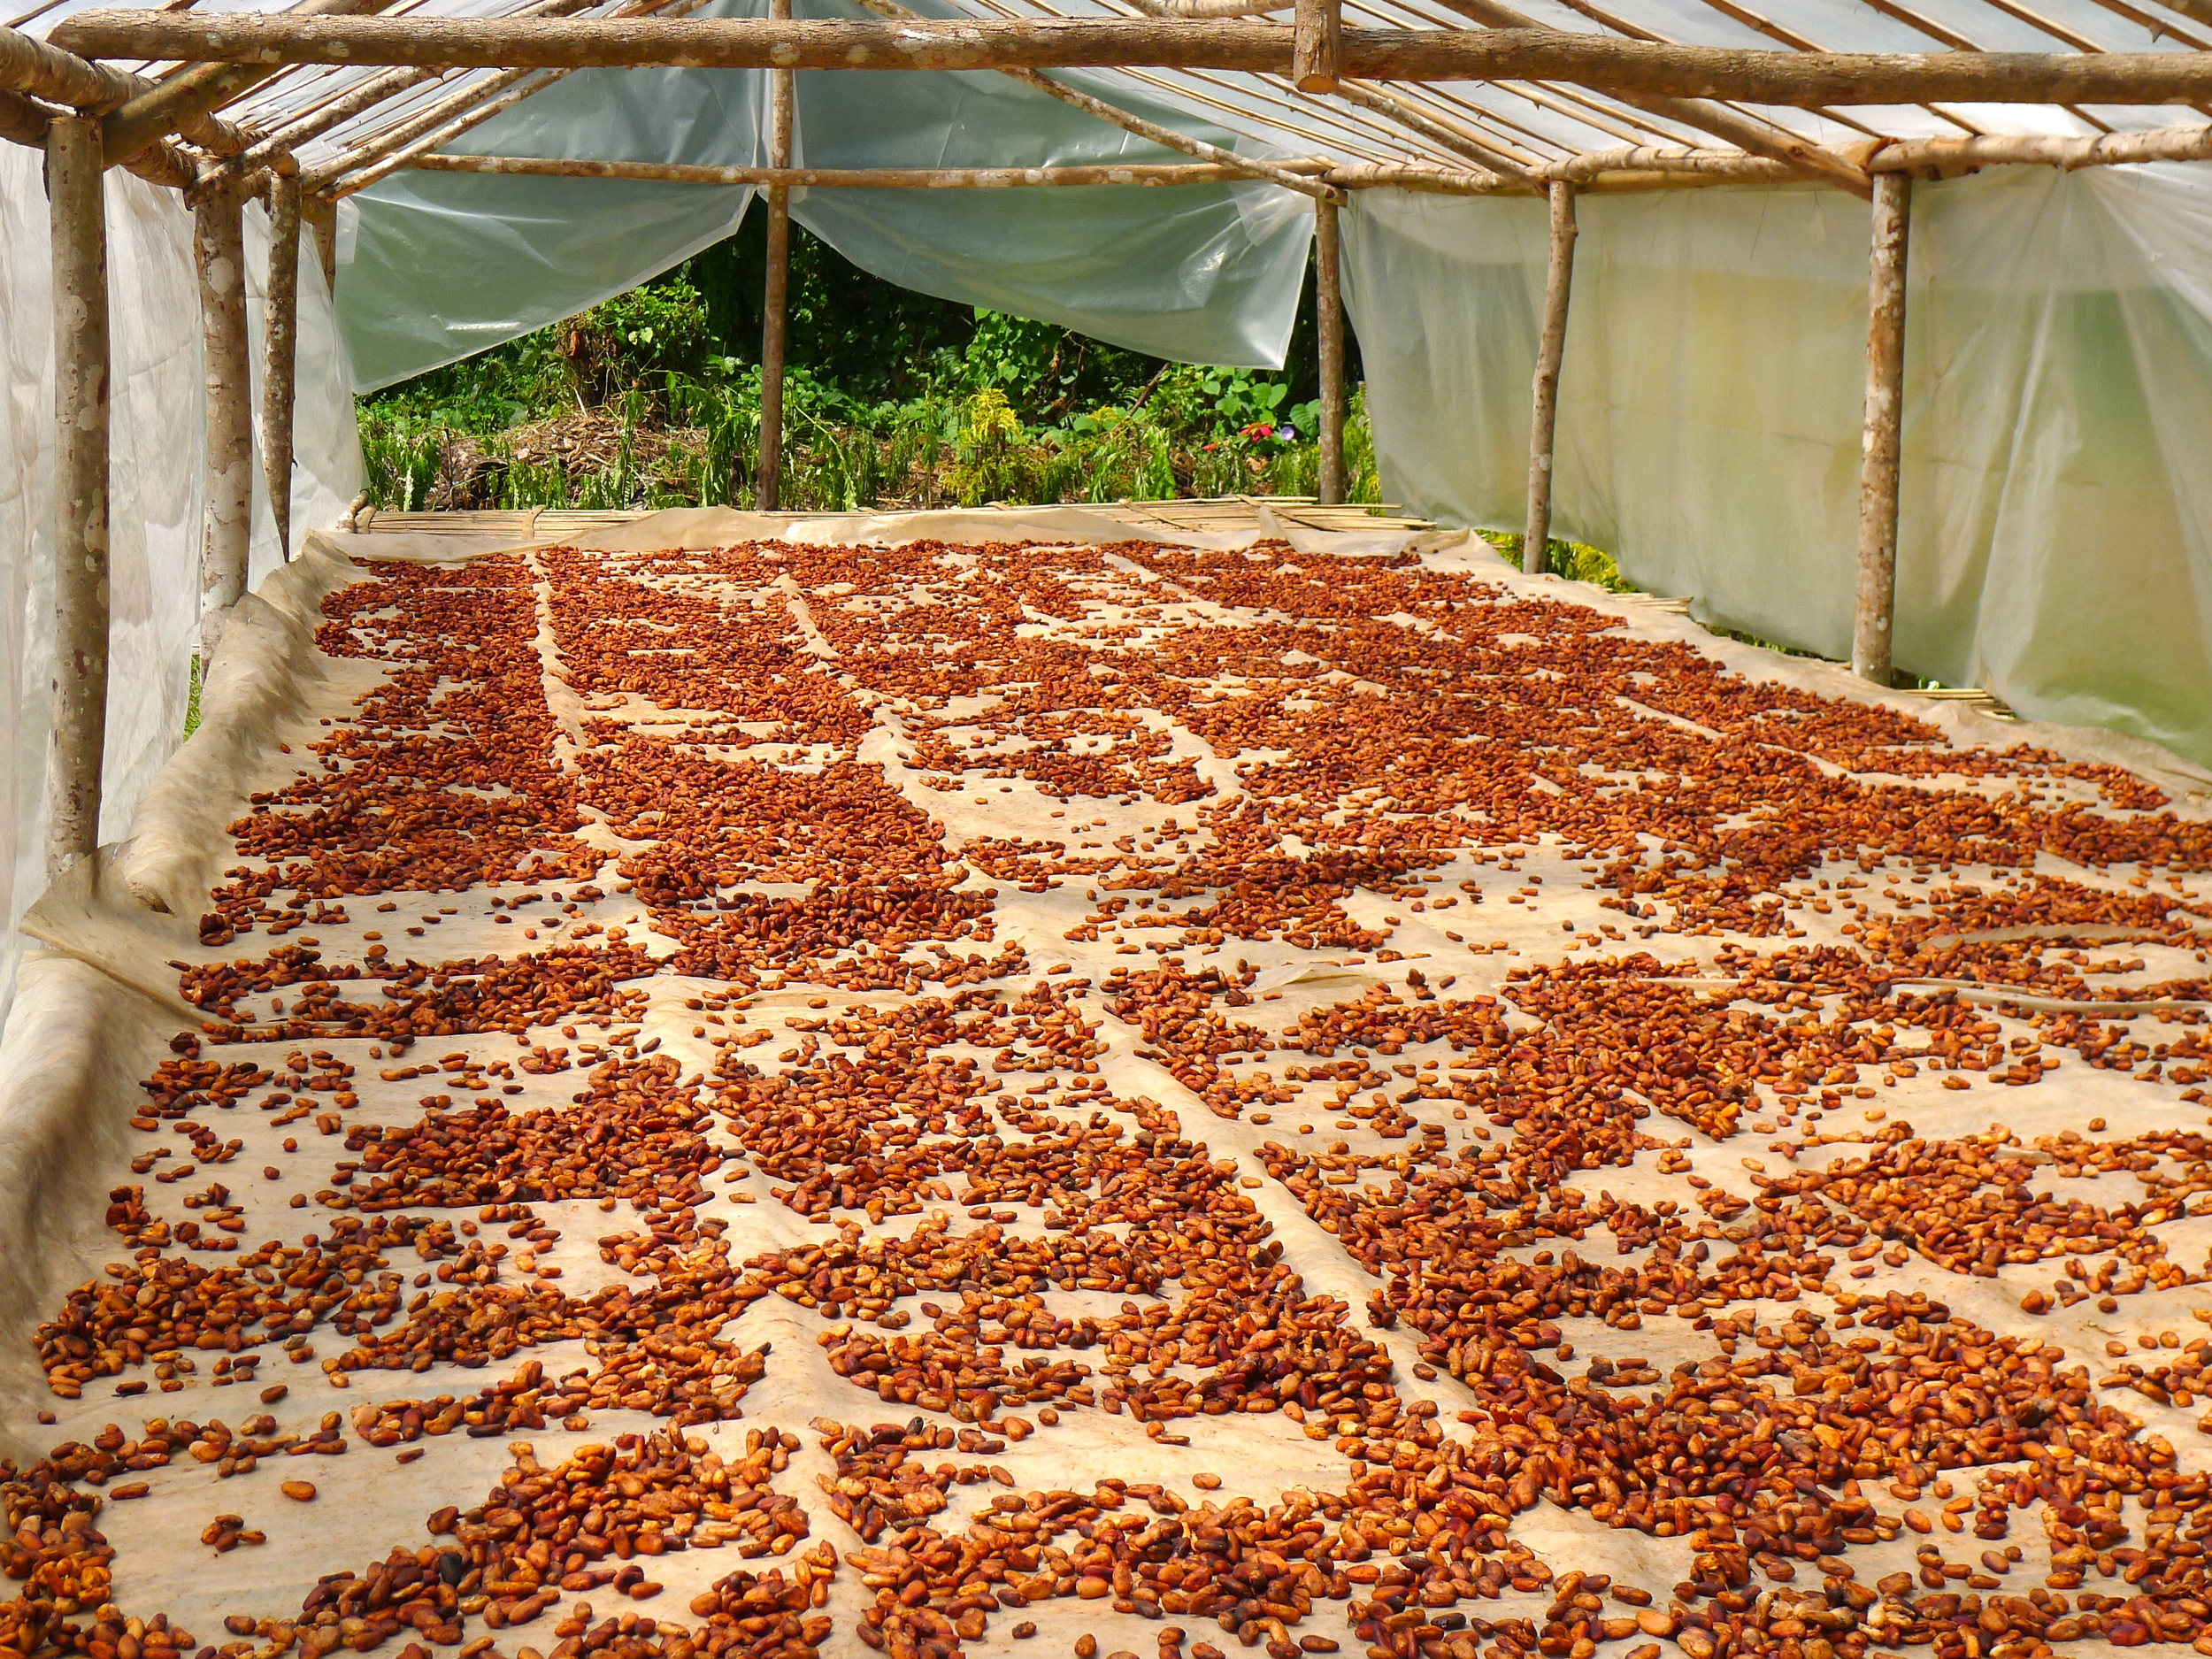 COCOA DRYER.